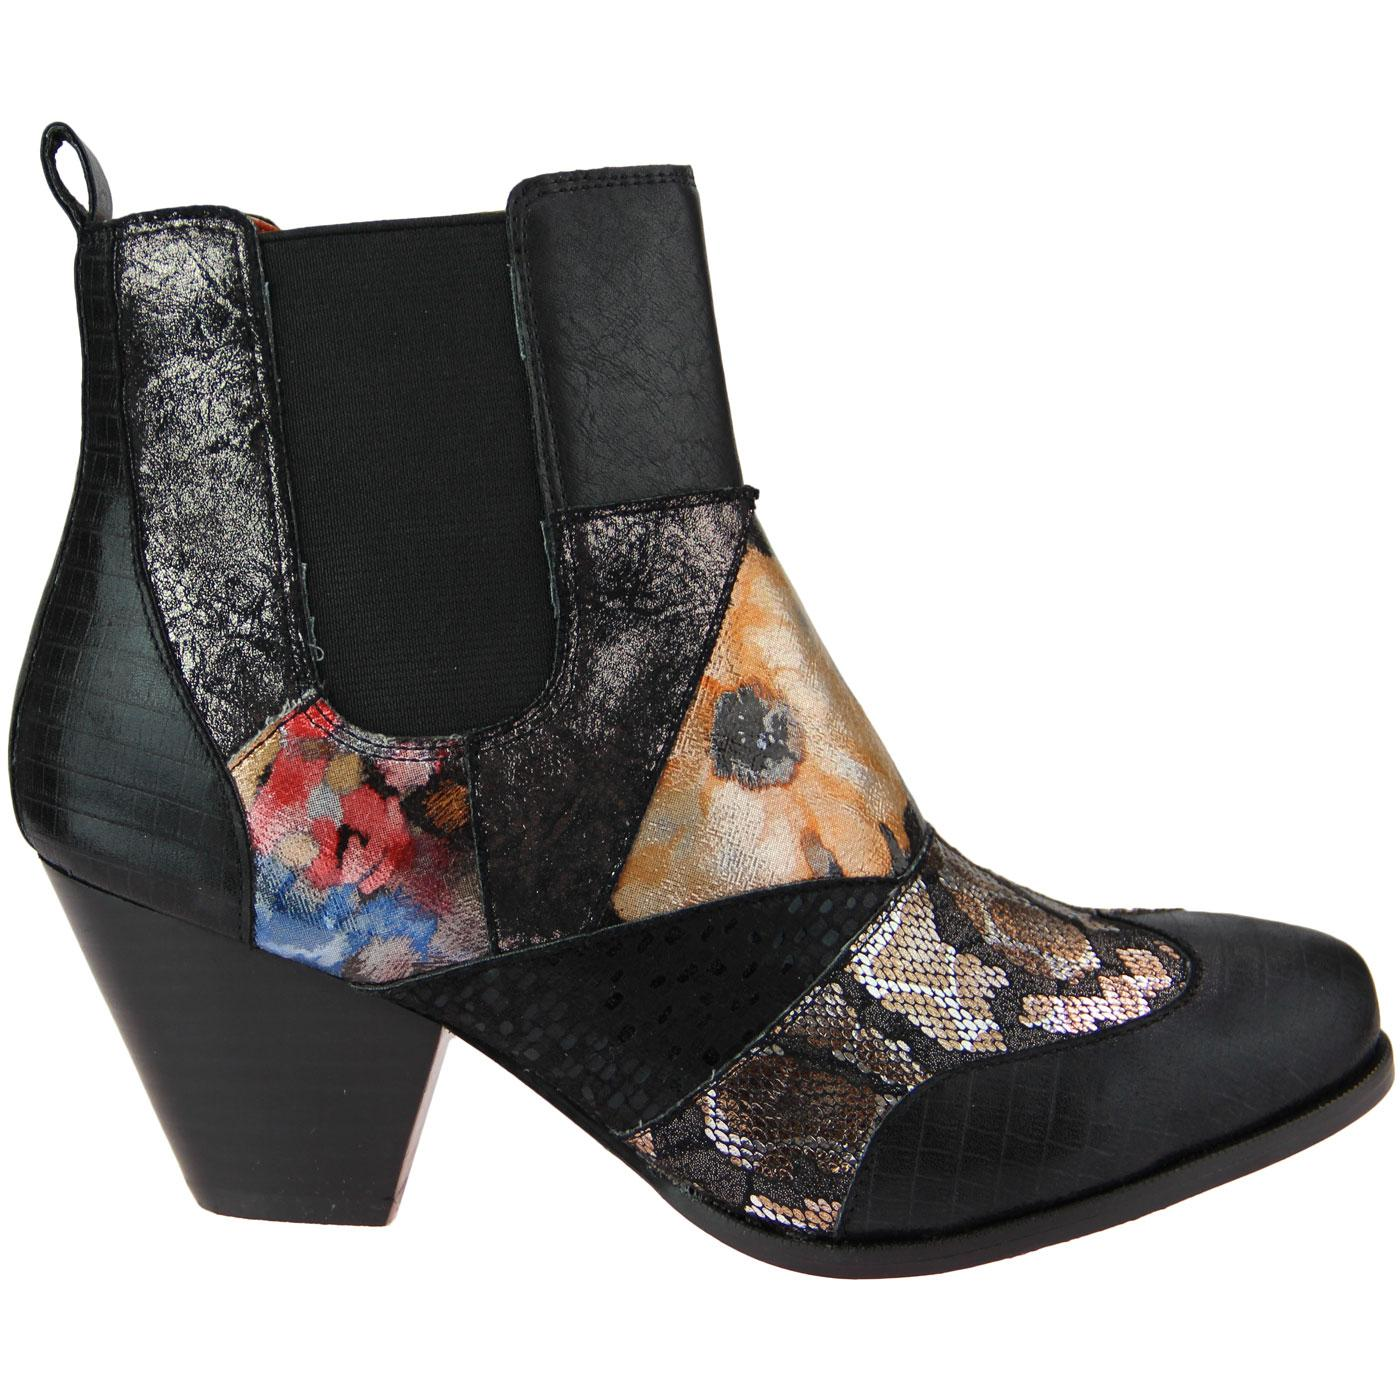 Chelsea Patch POETIC LICENCE Mod Chelsea Boots B